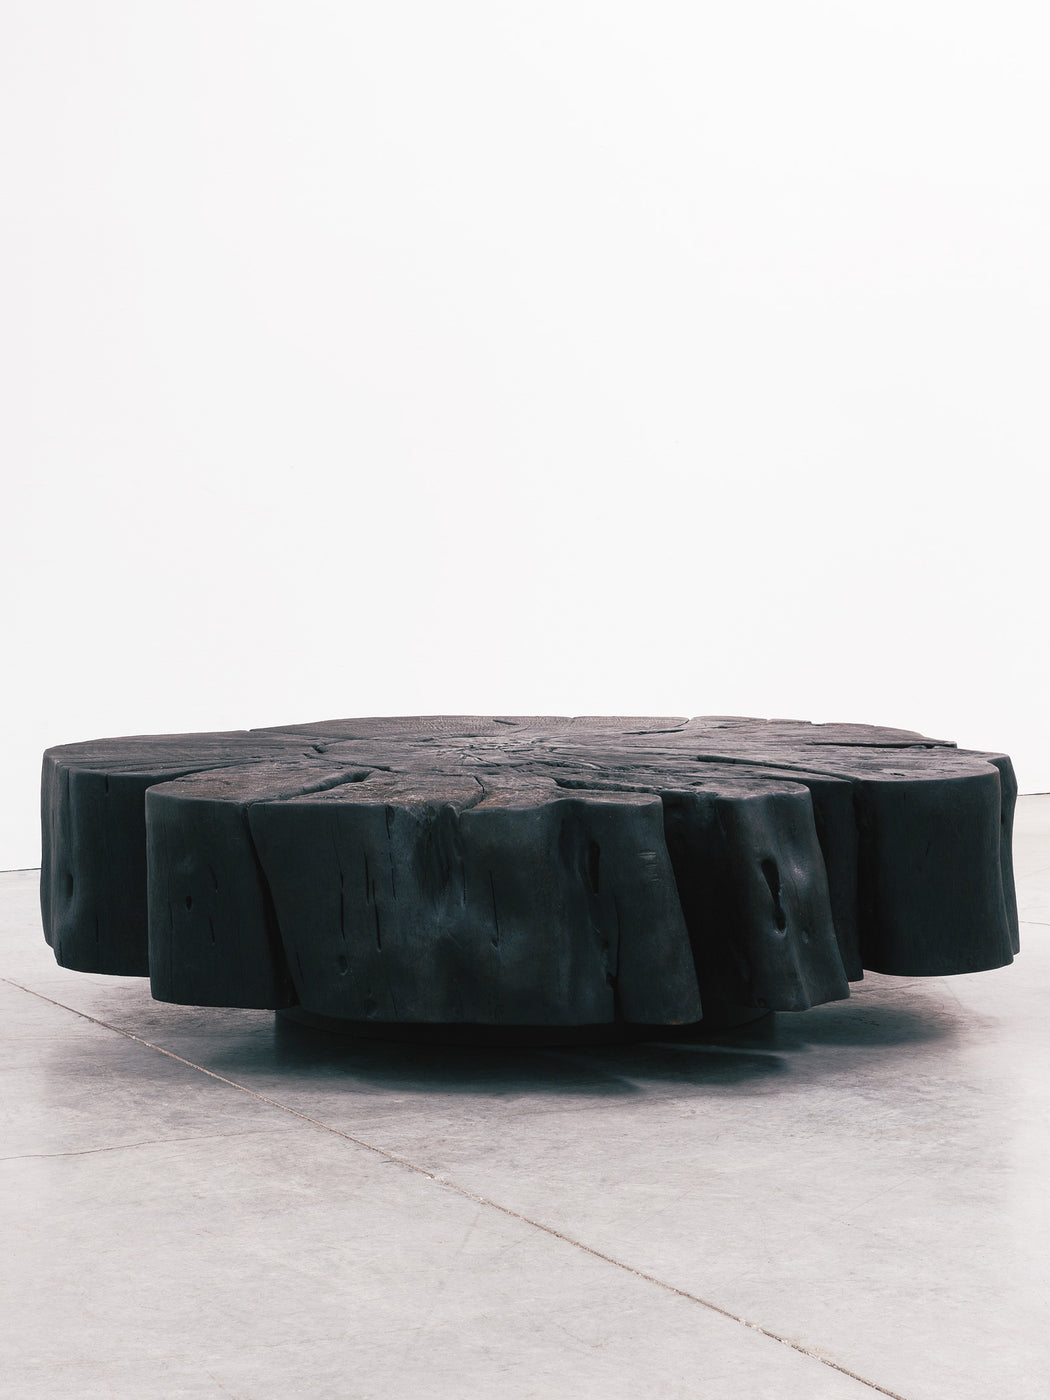 Charred Organic Slab Table